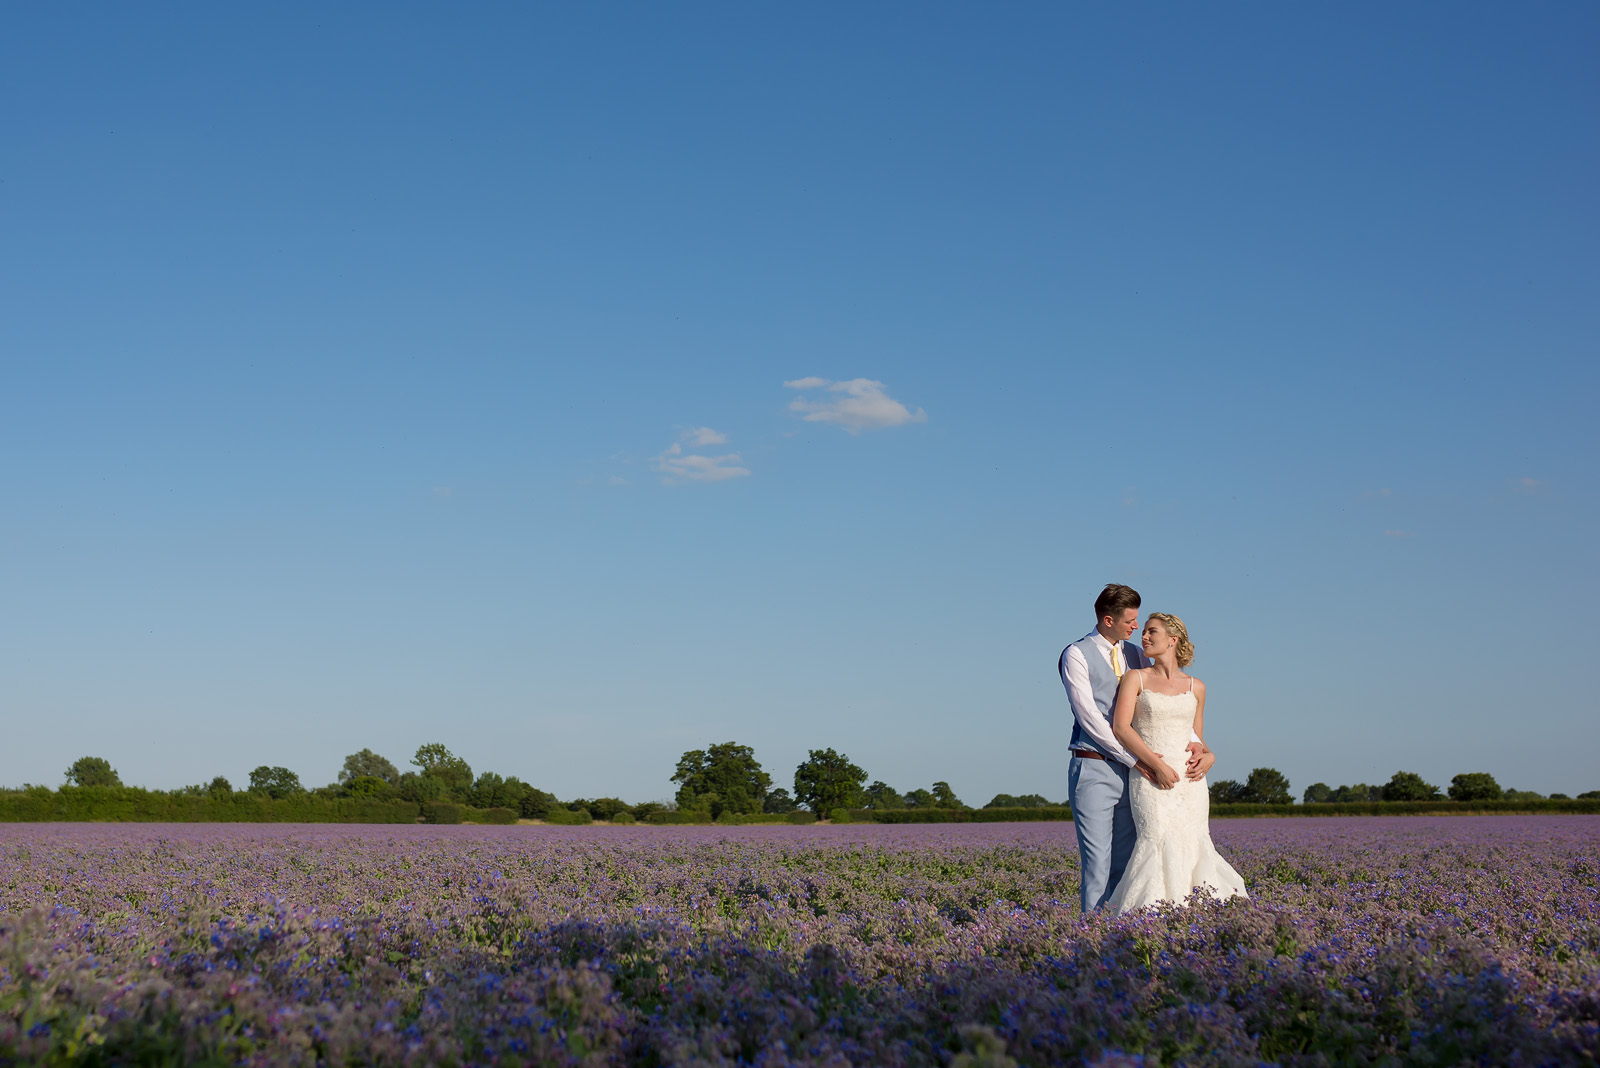 Wedding Photography Hertfordshire and Essex